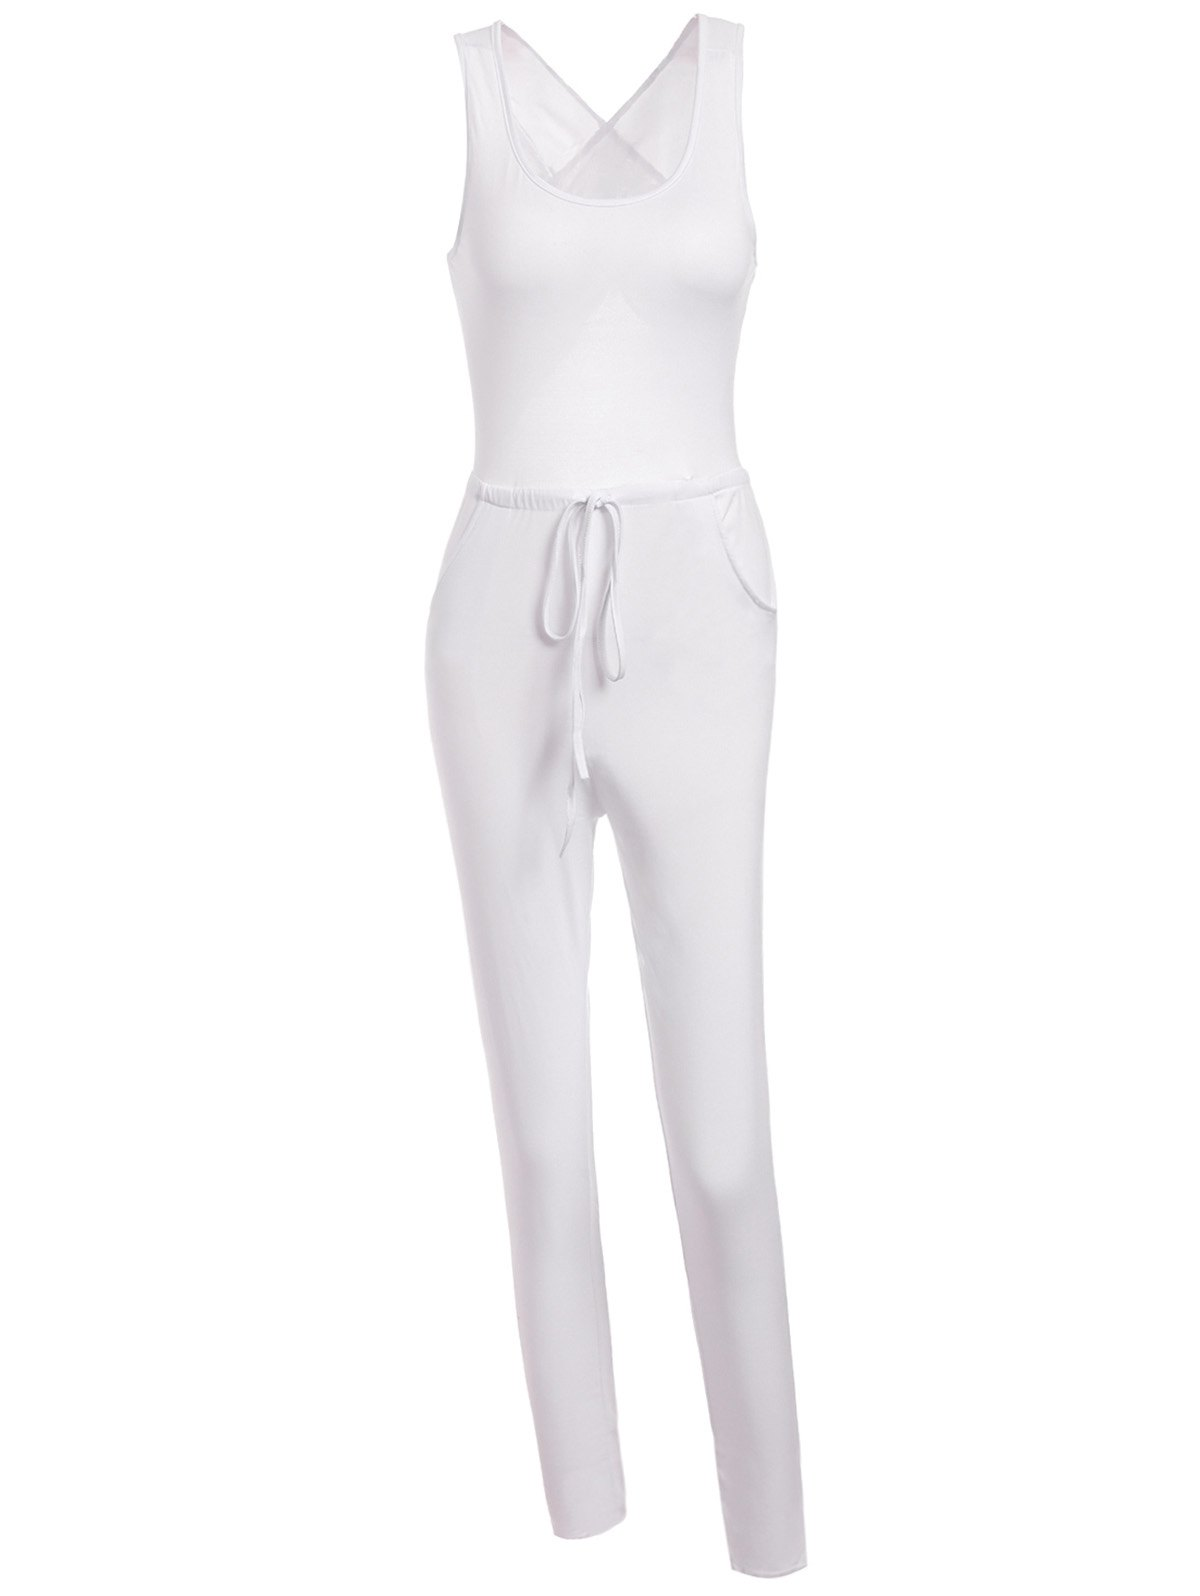 Stylish Scoop Neck Sleeveless Drawstring Hollow Out Women's Jumpsuit - WHITE L